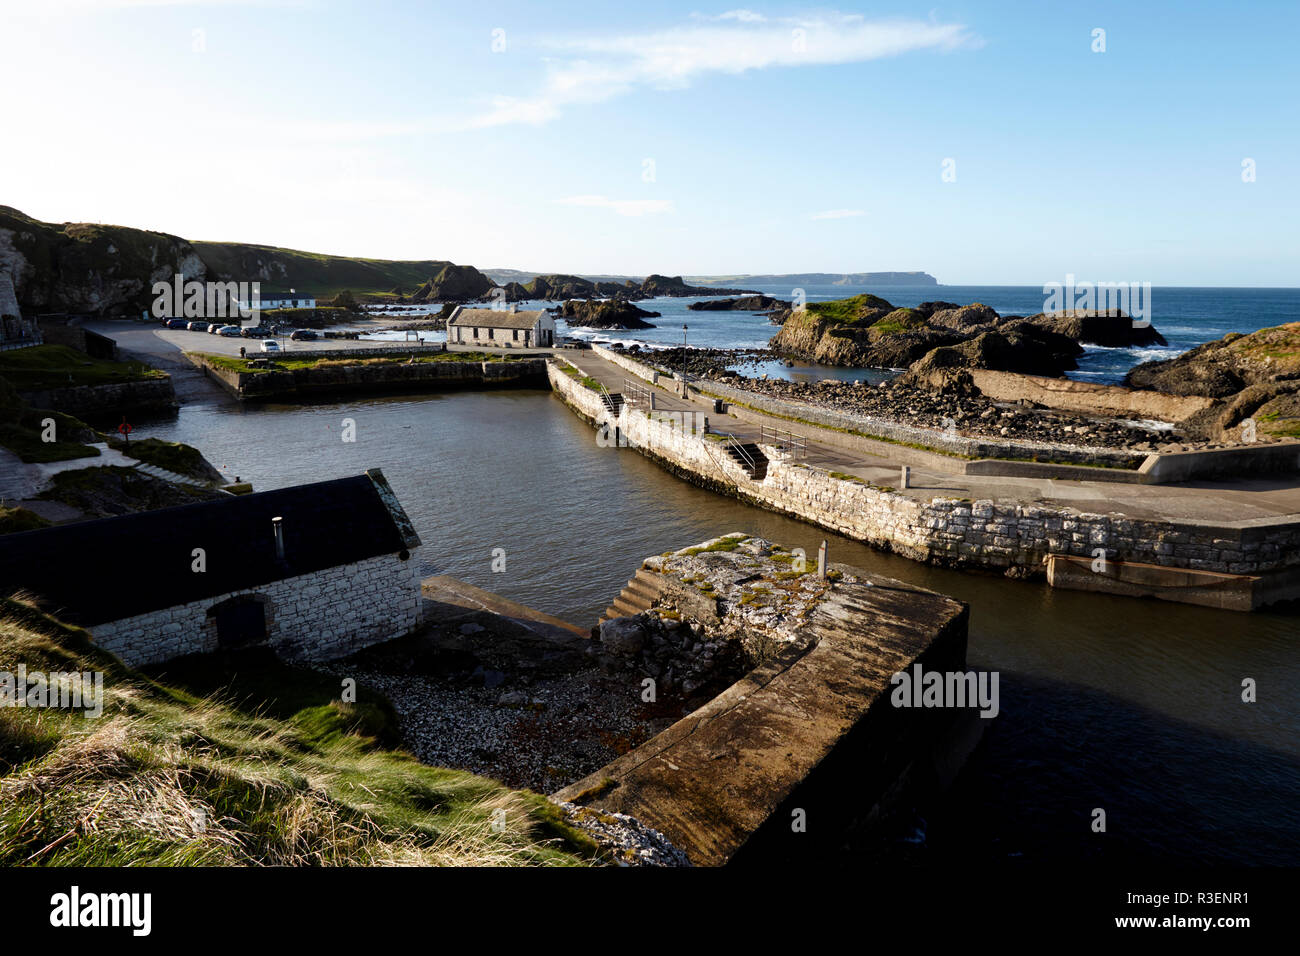 Ballintoy Harbour county antrim northern ireland used in Game of Thrones as the filming location for the Iron Islands - Stock Image